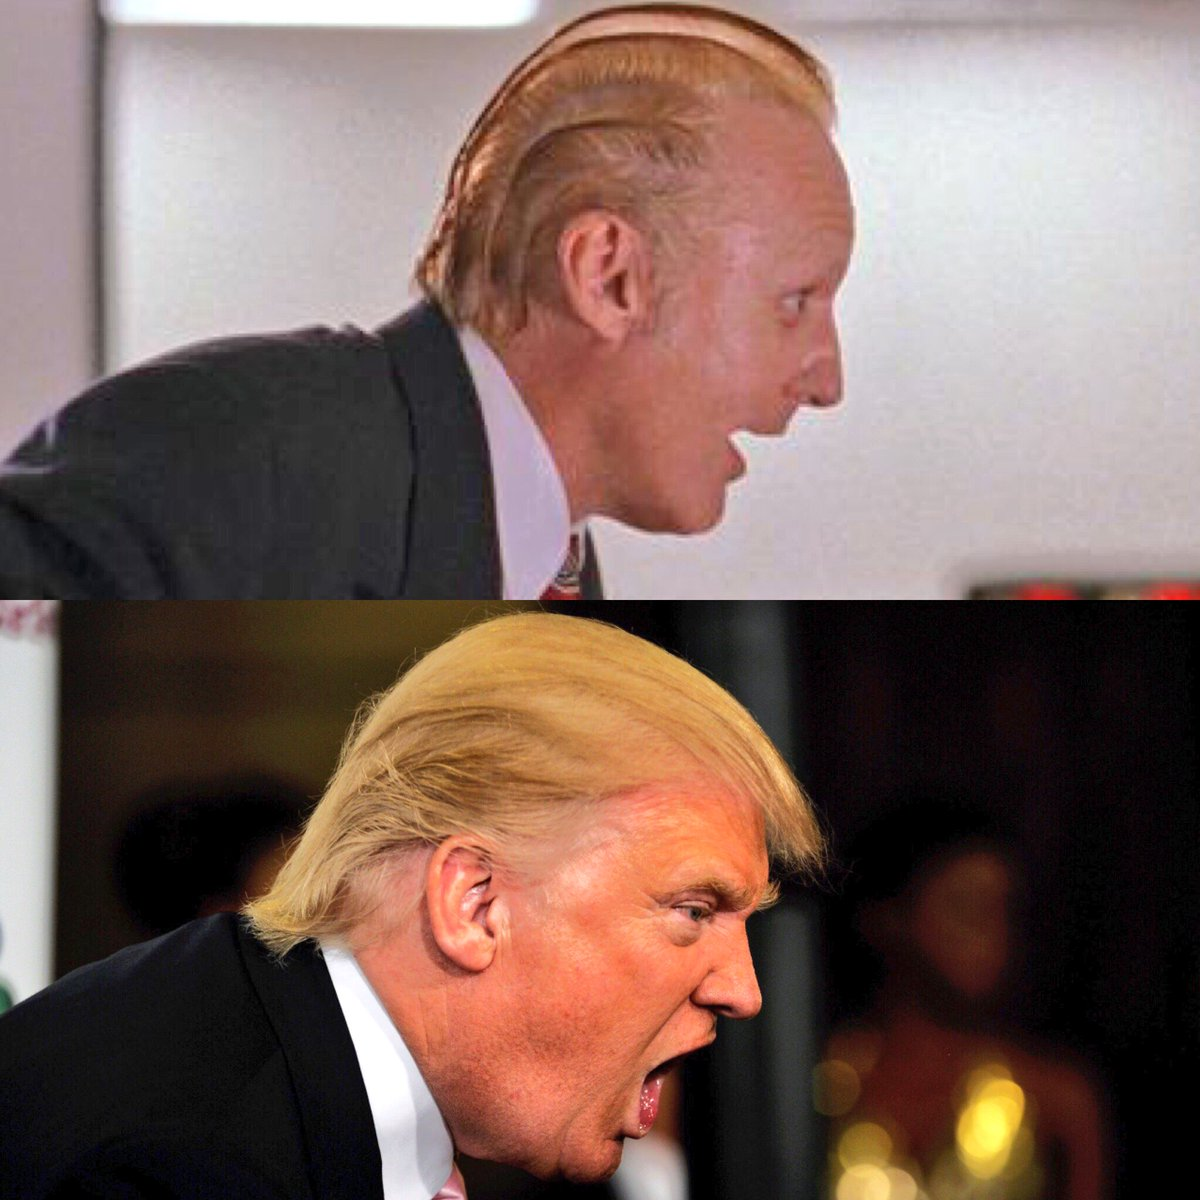 "Matt Ranaudo on Twitter: ""One is the Commander-In-Chief, the other is King  Koopa from Super Mario Bros. Can you tell who's who?? #presidential #trump  #mario #twins… https://t.co/G1jZRxwrw2"""